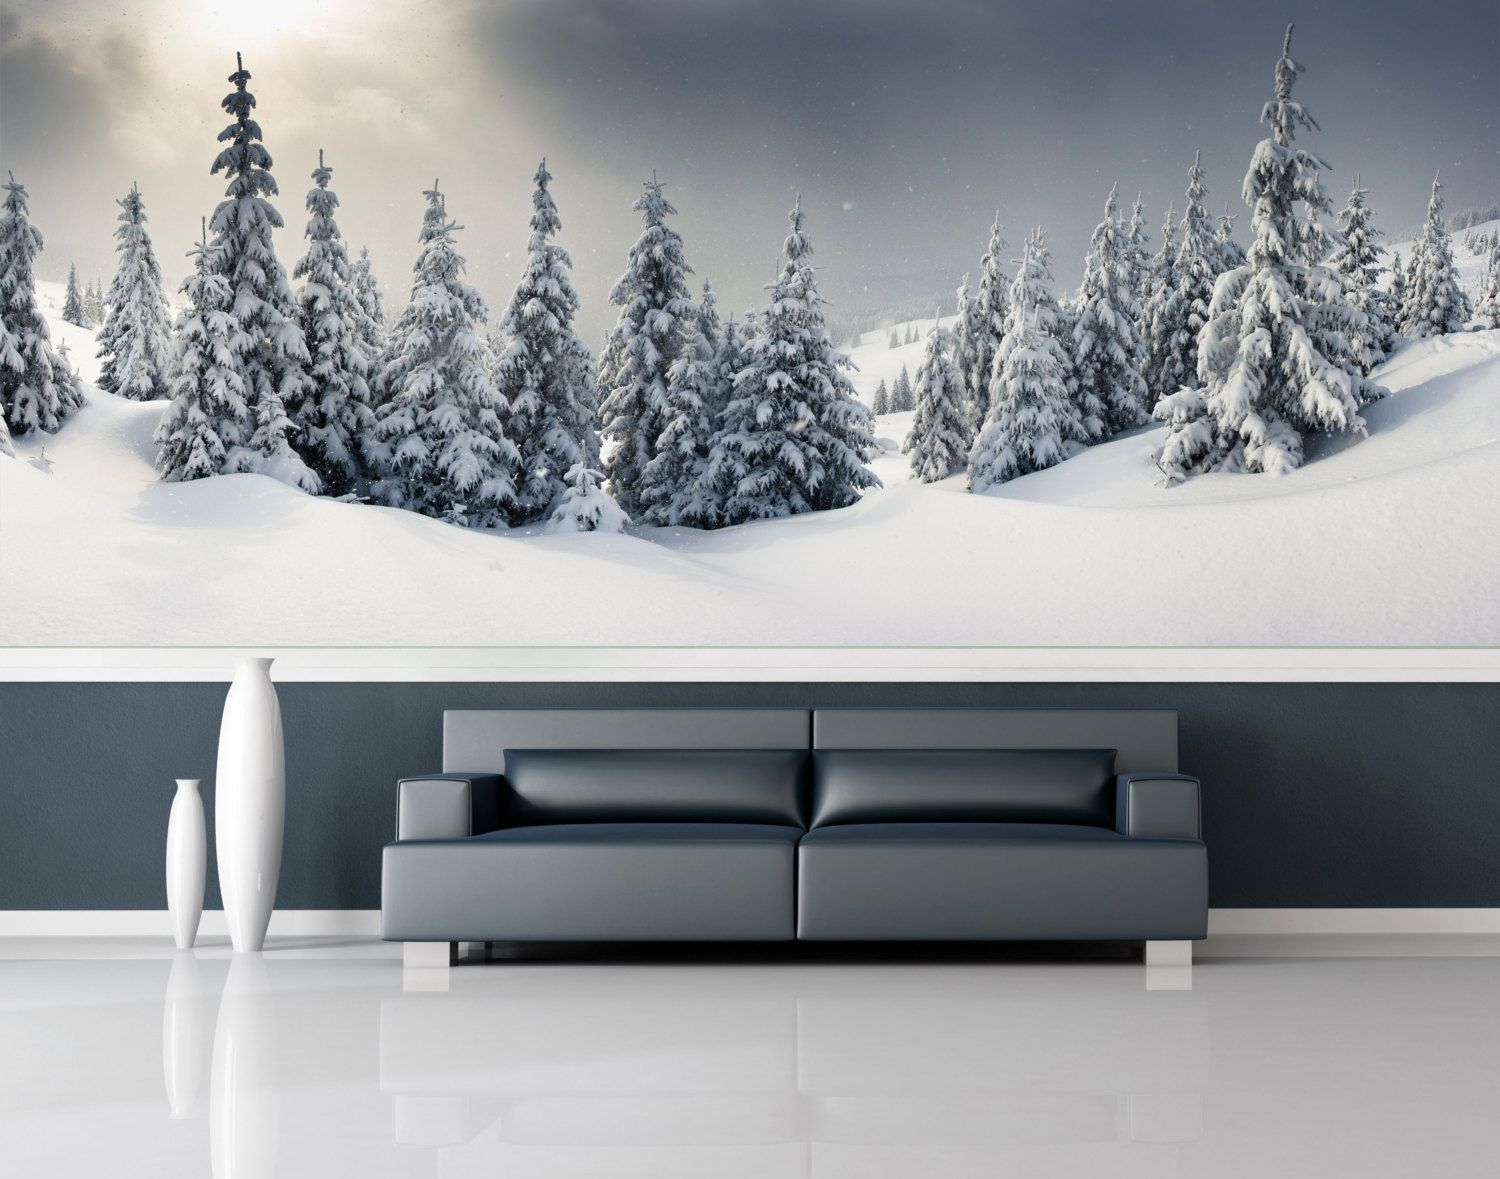 Snow forest wall mural repositionable peel stick wall paper snow forest wall mural repositionable peel stick wall paper wall covering by styleawall amipublicfo Gallery